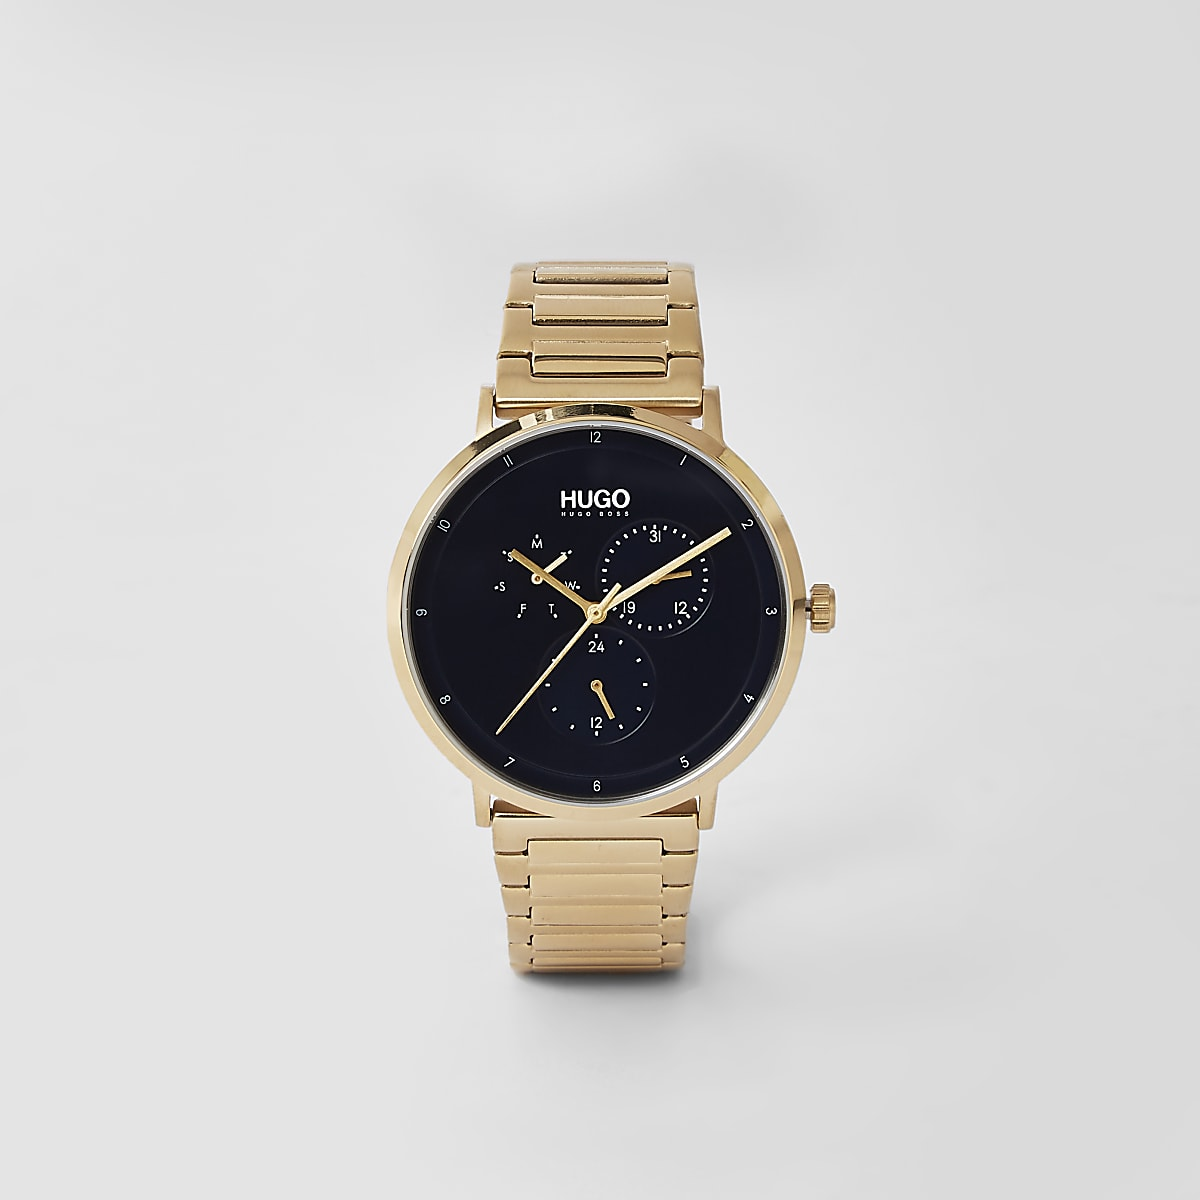 Hugo gold stainless steel watch